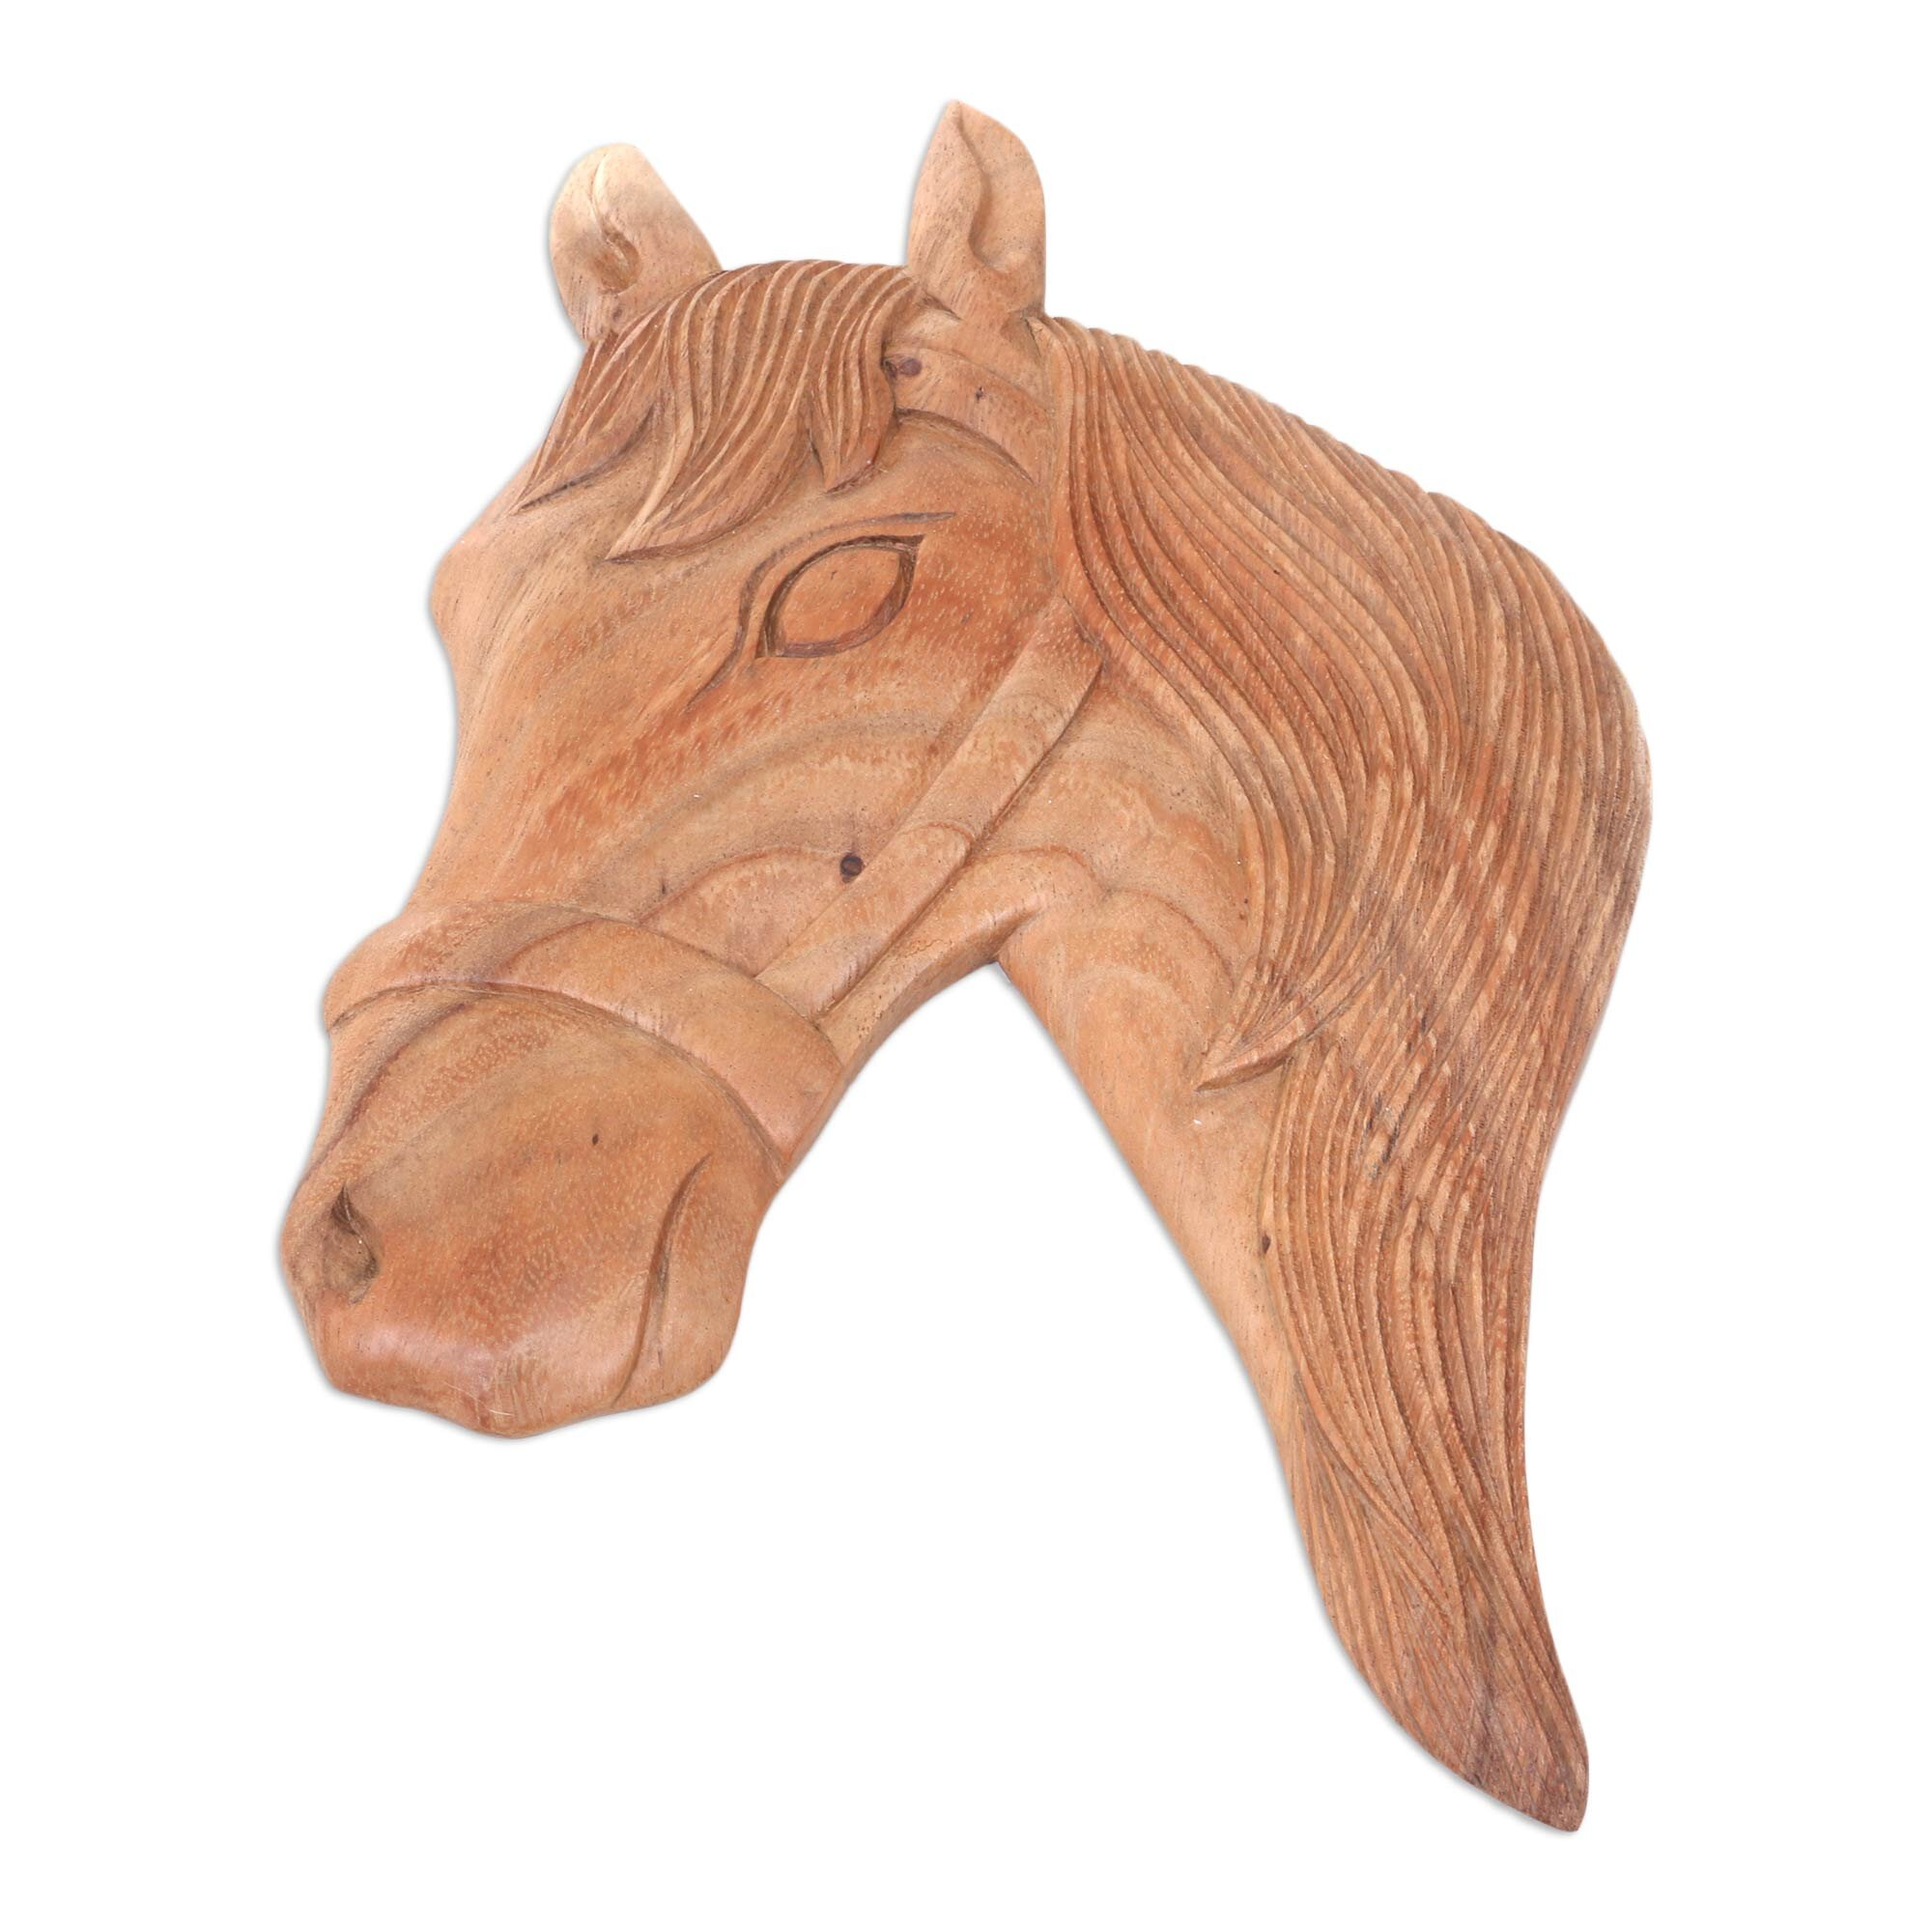 Faux Taxidermy Solid Wood Wall Accents You Ll Love In 2021 Wayfair